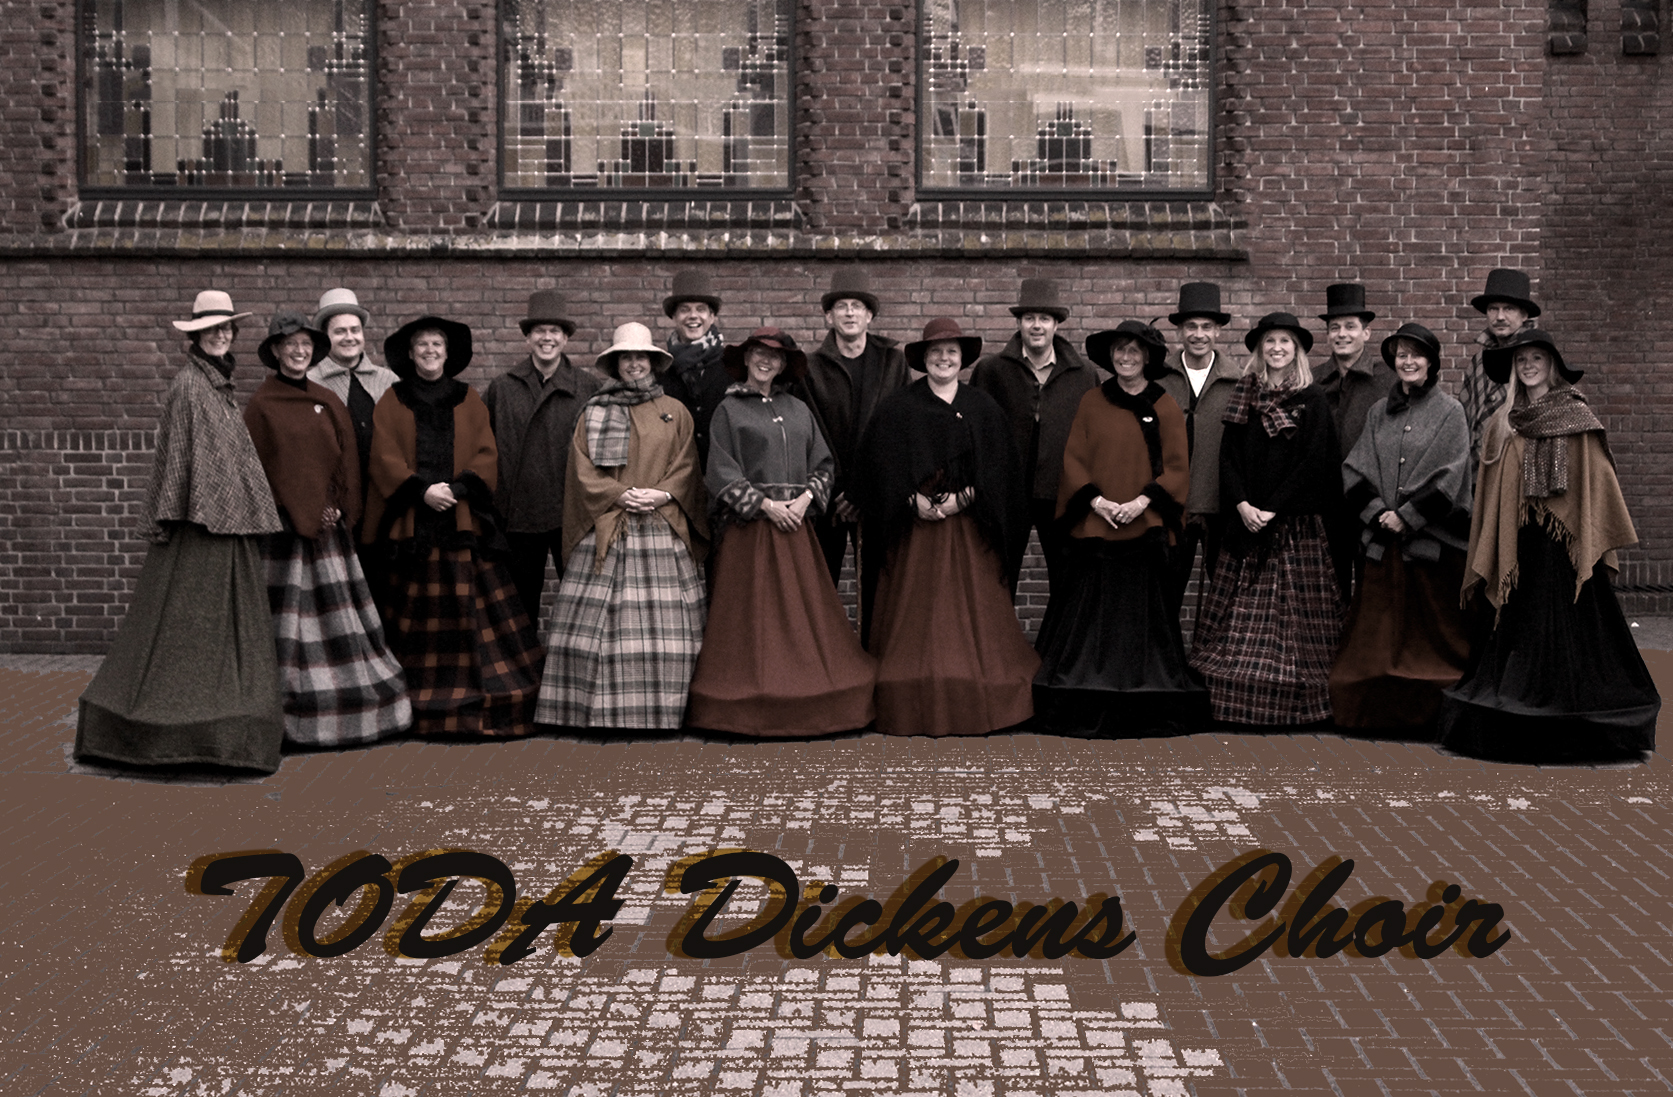 toda-dickens-choir-01.jpg